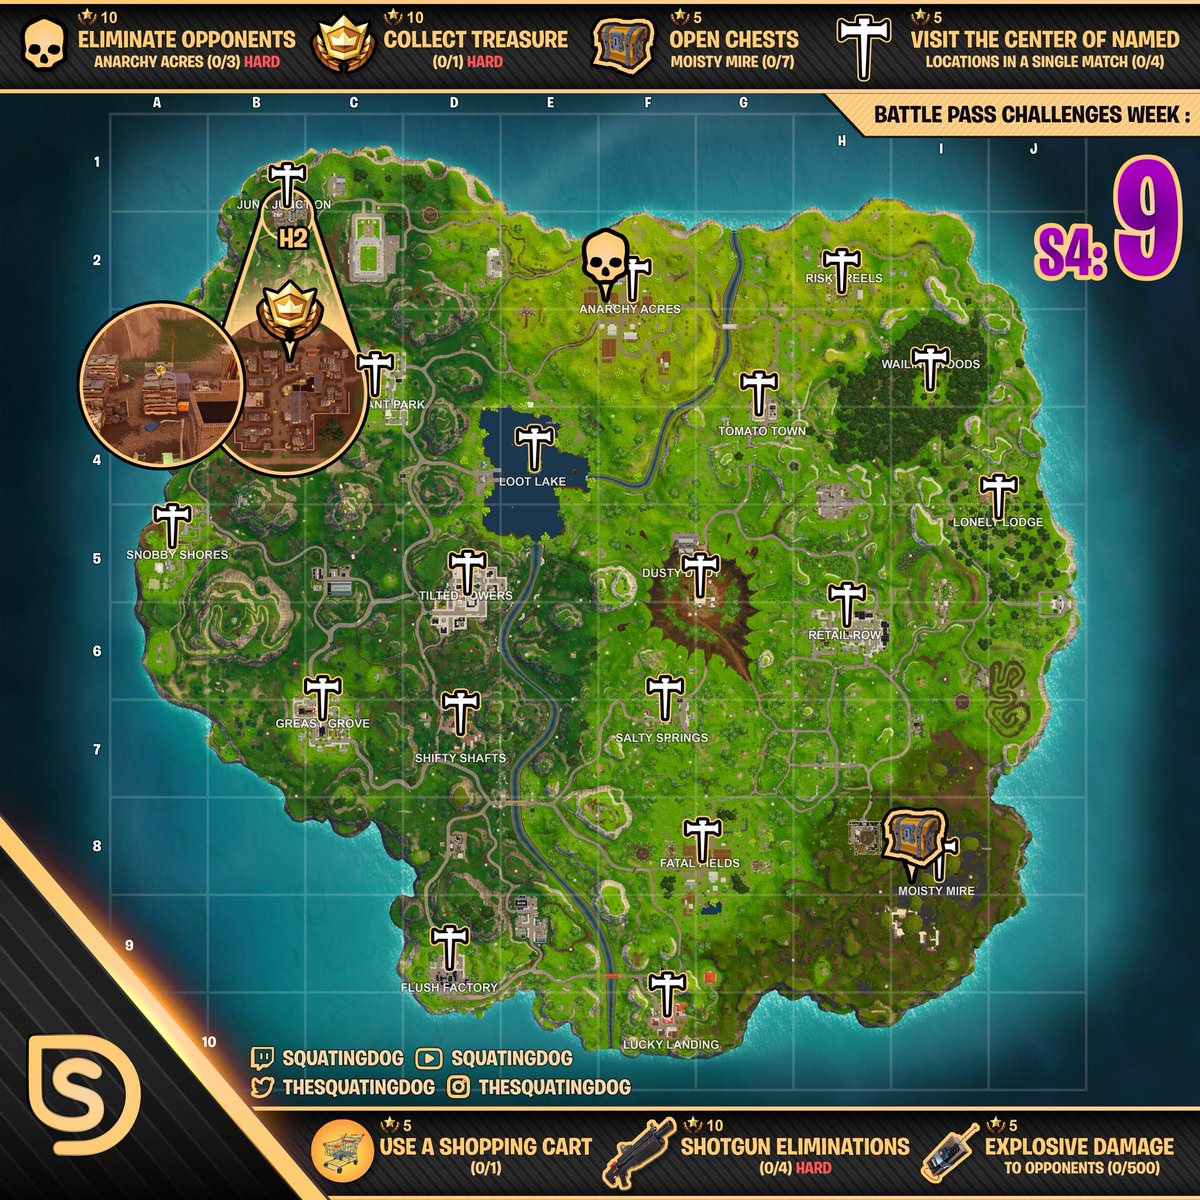 cheat sheet map for fortnite battle royale season 4 week 9 challenges - fortnite 9 map